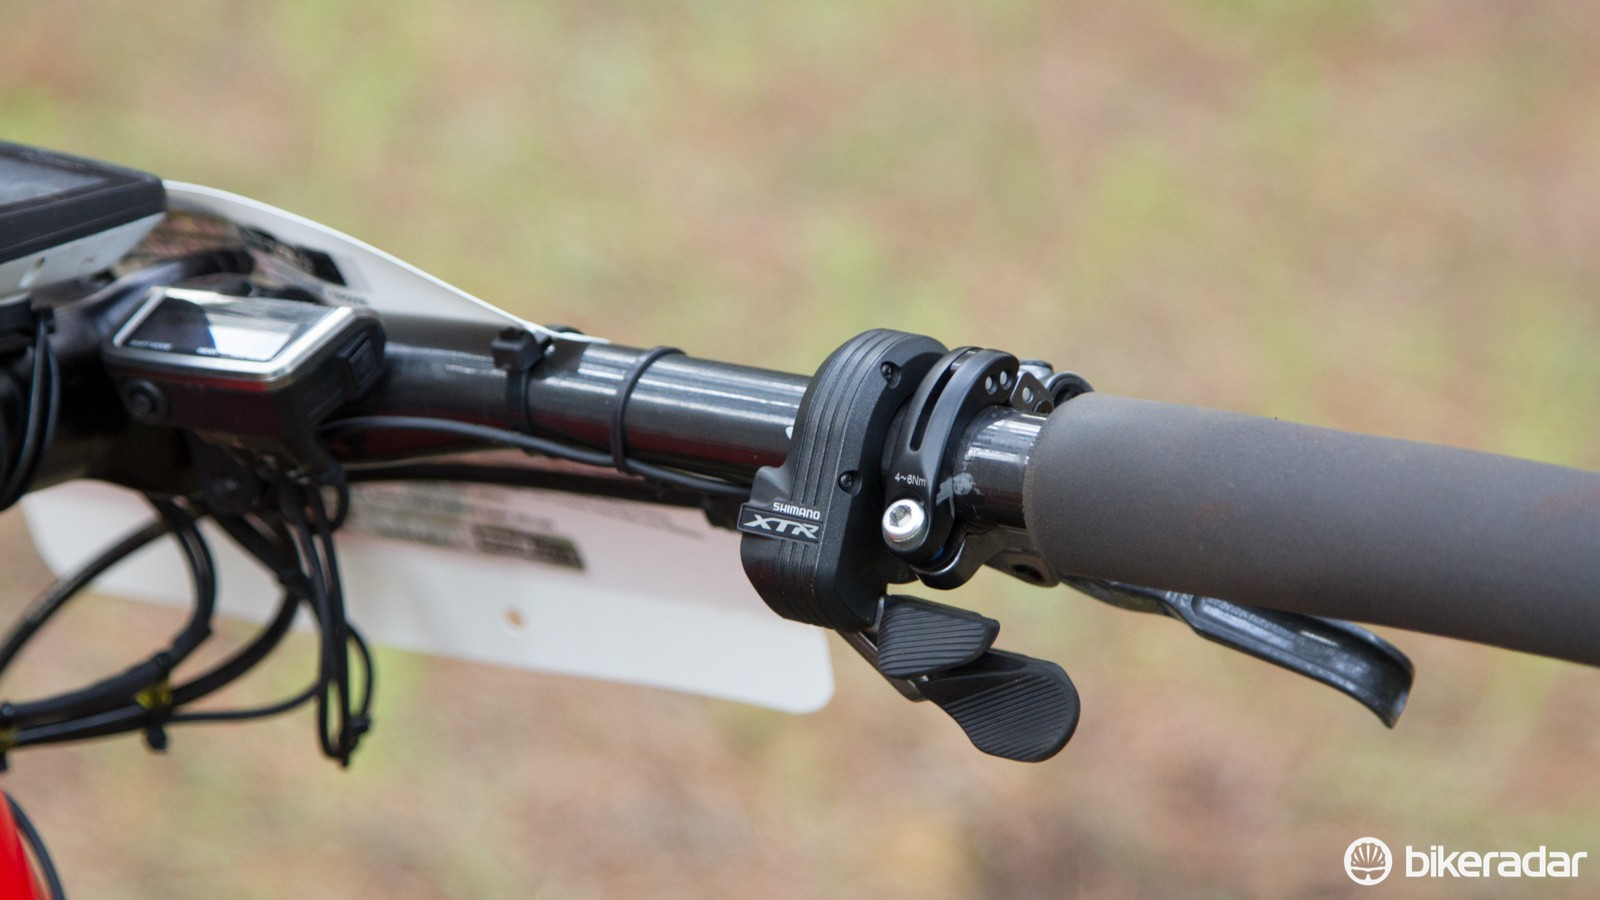 The XTR Di2 M9050 'shifter' offers adjustable lever reach. A tactile shift feel resembles a mechanical groupset, but with less effort of course